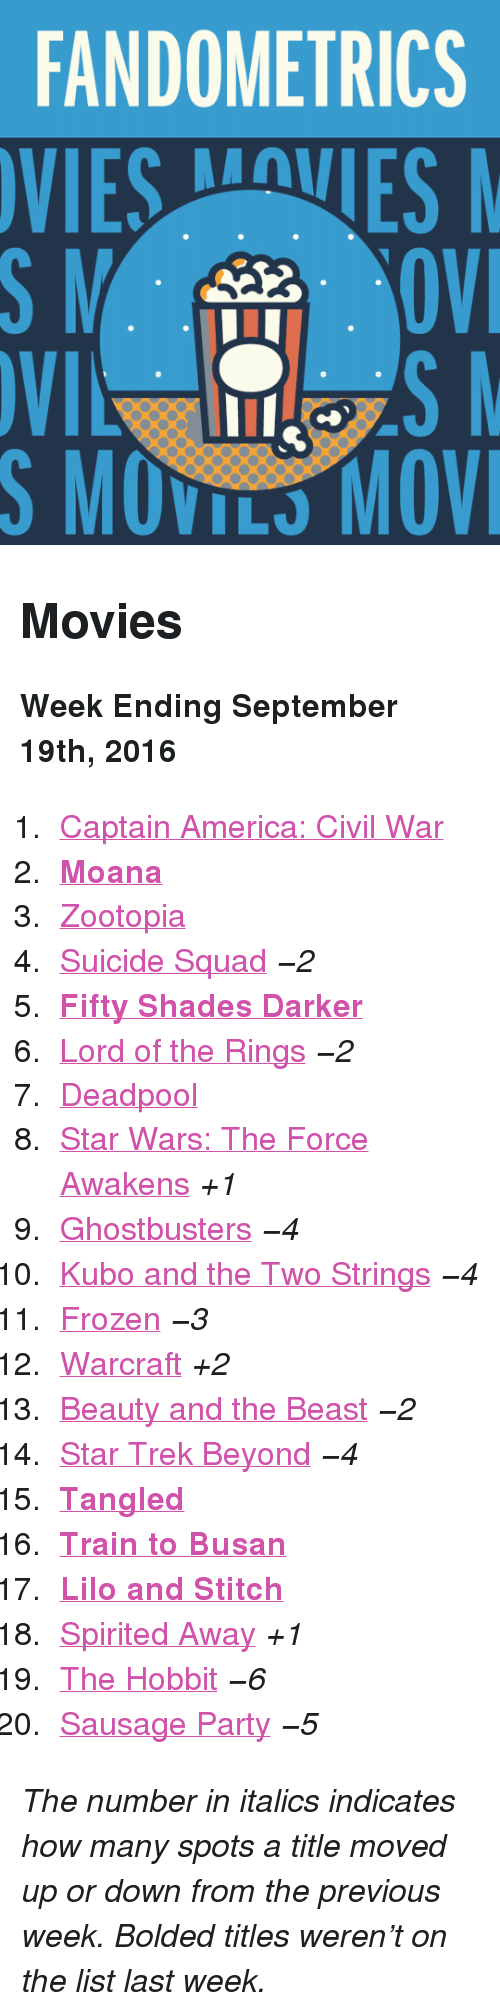 """lilo and stitch: FANDOMETRICS  VIESVES  S MOVILS MOV <h2>Movies</h2><p><b>Week Ending September 19th, 2016</b></p><ol><li><a href=""""http://www.tumblr.com/search/captain%20america%20civil%20war"""">Captain America: Civil War</a></li>  <li><a href=""""http://www.tumblr.com/search/moana""""><b>Moana</b></a></li>  <li><a href=""""http://www.tumblr.com/search/zootopia"""">Zootopia</a></li>  <li><a href=""""http://www.tumblr.com/search/suicide%20squad"""">Suicide Squad</a><i>−2</i></li>  <li><a href=""""http://www.tumblr.com/search/fifty%20shades%20darker""""><b>Fifty Shades Darker</b></a></li>  <li><a href=""""http://www.tumblr.com/search/lotr"""">Lord of the Rings</a><i>−2</i></li>  <li><a href=""""http://www.tumblr.com/search/deadpool"""">Deadpool</a></li>  <li><a href=""""http://www.tumblr.com/search/the%20force%20awakens"""">Star Wars: The Force Awakens</a><i>+1</i></li>  <li><a href=""""http://www.tumblr.com/search/ghostbusters"""">Ghostbusters</a><i>−4</i></li>  <li><a href=""""http://www.tumblr.com/search/kubo%20and%20the%20two%20strings"""">Kubo and the Two Strings</a><i>−4</i></li>  <li><a href=""""http://www.tumblr.com/search/frozen"""">Frozen</a><i>−3</i></li>  <li><a href=""""http://www.tumblr.com/search/warcraft"""">Warcraft</a><i>+2</i></li>  <li><a href=""""http://www.tumblr.com/search/beauty%20and%20the%20beast"""">Beauty and the Beast</a><i>−2</i></li>  <li><a href=""""http://www.tumblr.com/search/star%20trek%20beyond"""">Star Trek Beyond</a><i>−4</i></li>  <li><a href=""""http://www.tumblr.com/search/tangled""""><b>Tangled</b></a></li>  <li><a href=""""http://www.tumblr.com/search/train%20to%20busan""""><b>Train to Busan</b></a></li>  <li><a href=""""http://www.tumblr.com/search/lilo%20and%20stitch""""><b>Lilo and Stitch</b></a></li>  <li><a href=""""http://www.tumblr.com/search/spirited%20away"""">Spirited Away</a><i>+1</i></li>  <li><a href=""""http://www.tumblr.com/search/the%20hobbit"""">The Hobbit</a><i>−6</i></li>  <li><a href=""""http://www.tumblr.com/search/sausage%20party"""">Sausage Party</a><i>−5</i></li></ol><p><i>The number in italics indicates how many sp"""